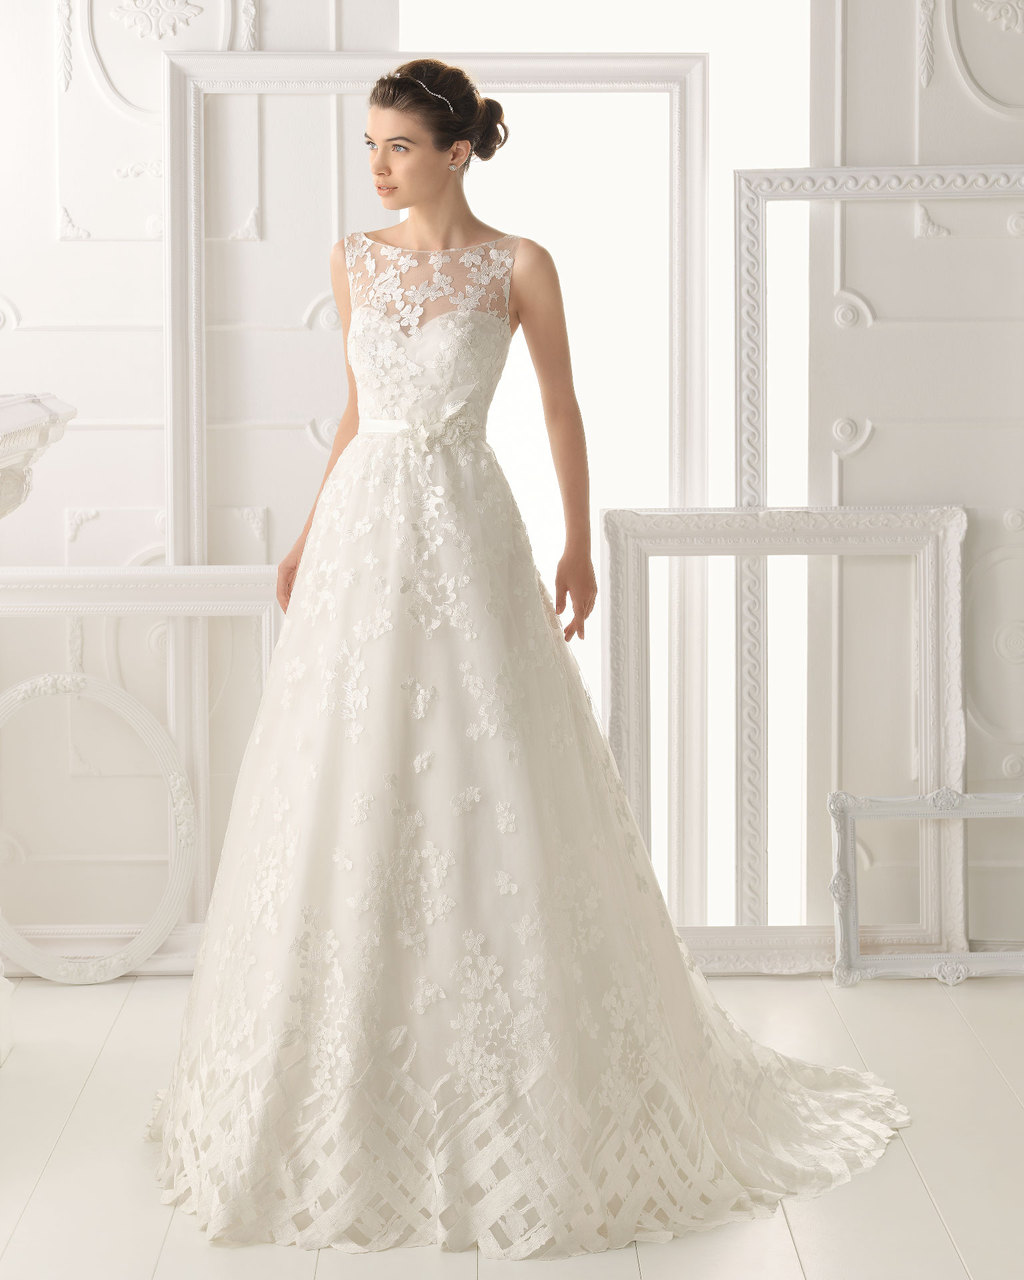 Aire Barcelona wedding dress 2014 Bridal Oeste